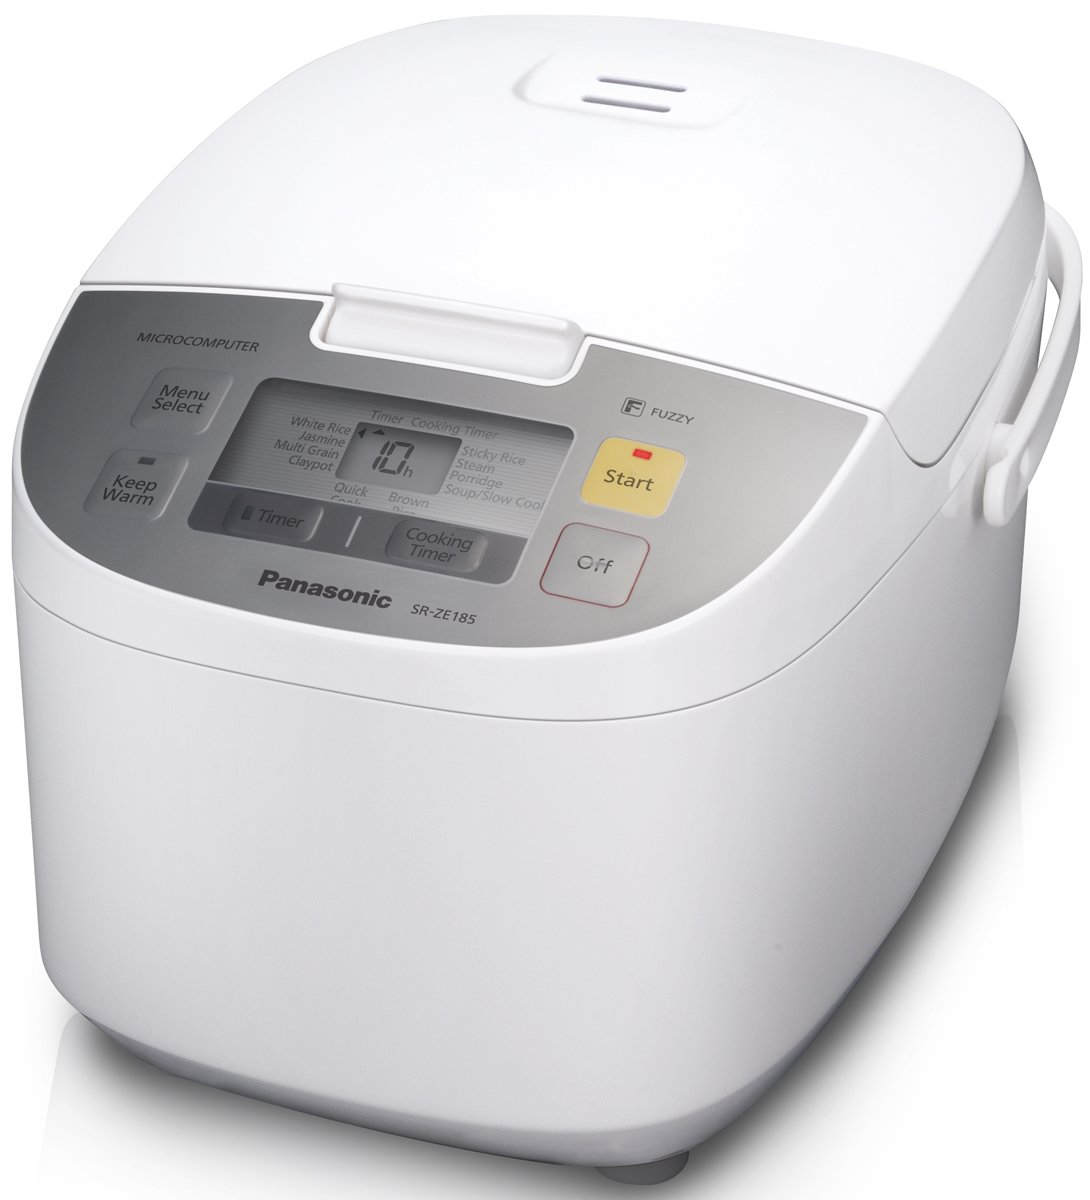 Panasonic SR ZE185WSTM Rice Cooker Appliances Online